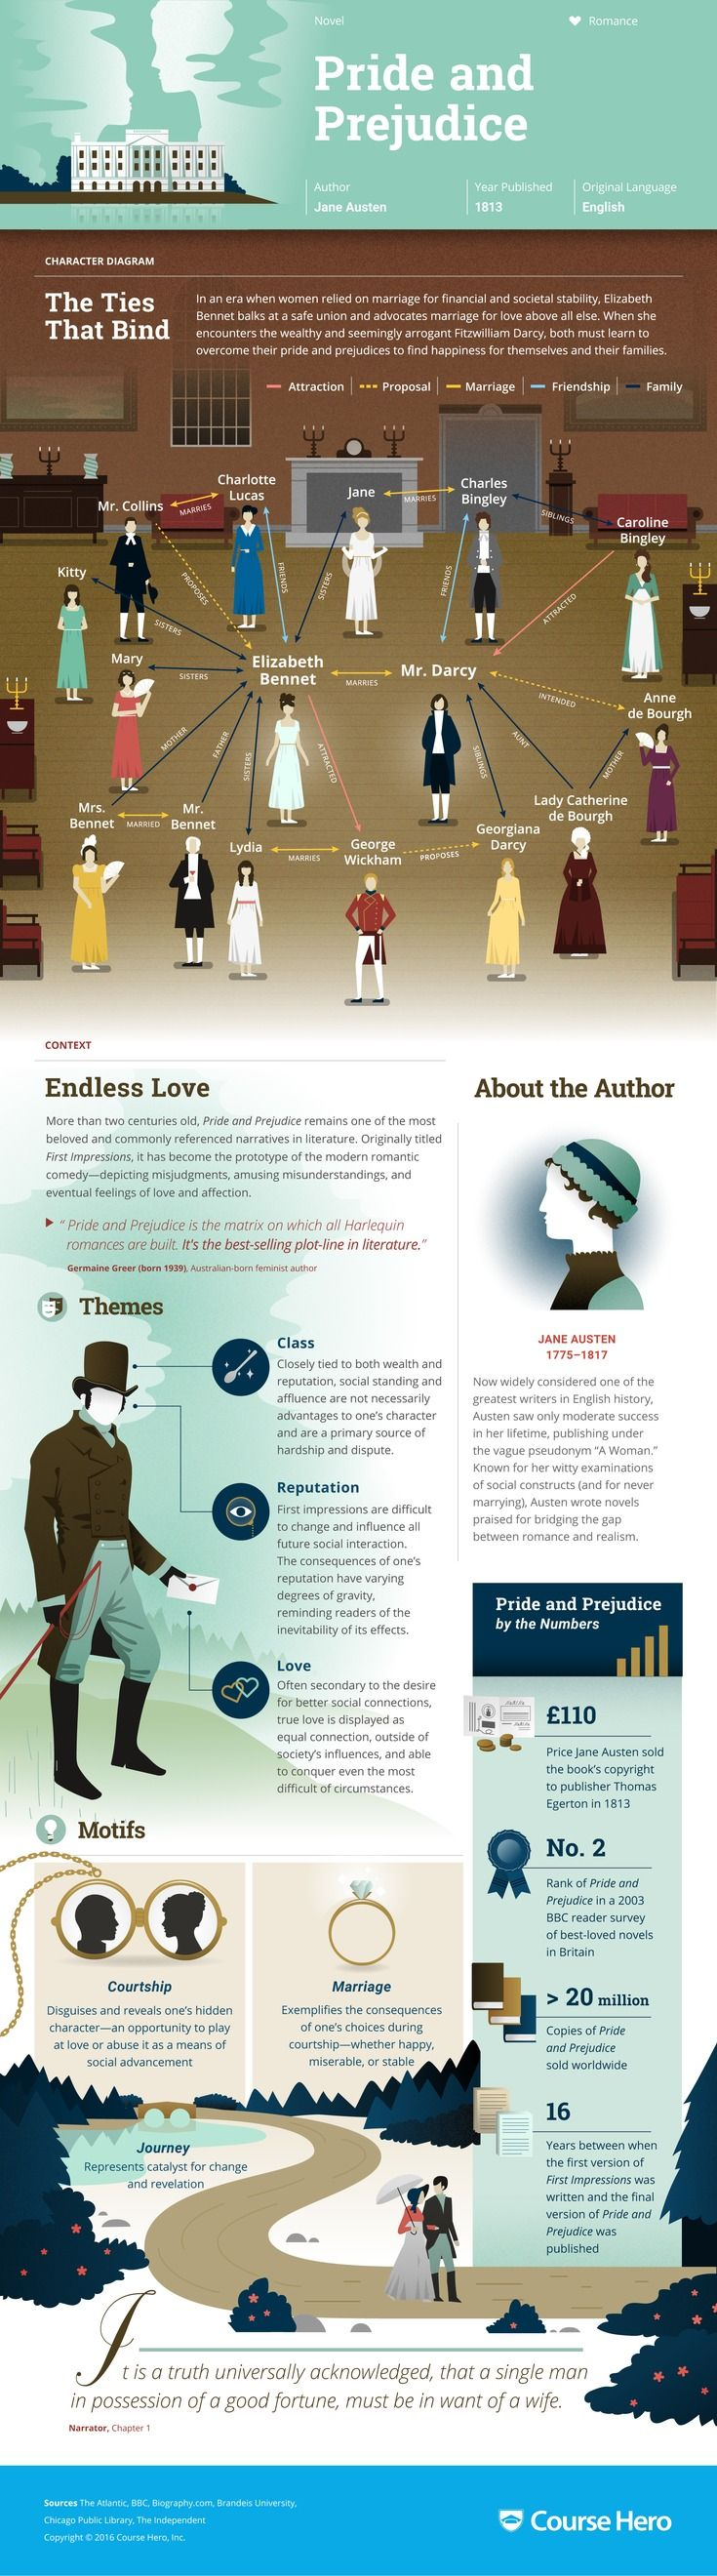 best ideas about book summaries personal study guide for jane austen s pride and prejudice including chapter summary character analysis and more learn all about pride and prejudice